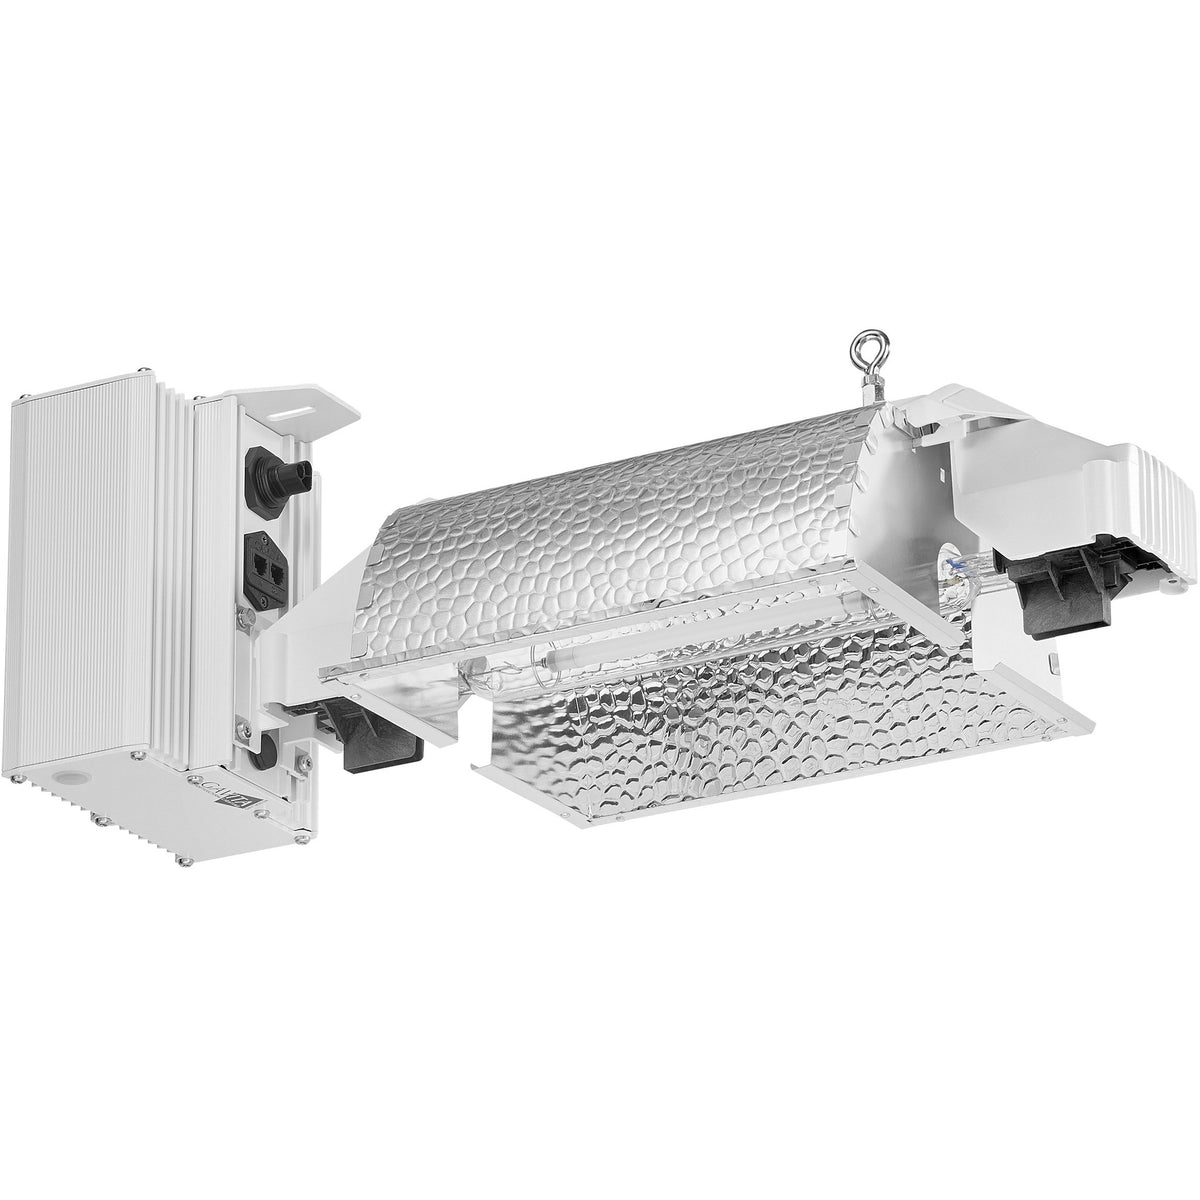 Gavita Pro E-Series 1000e DE Commercial Grow Light Fixture